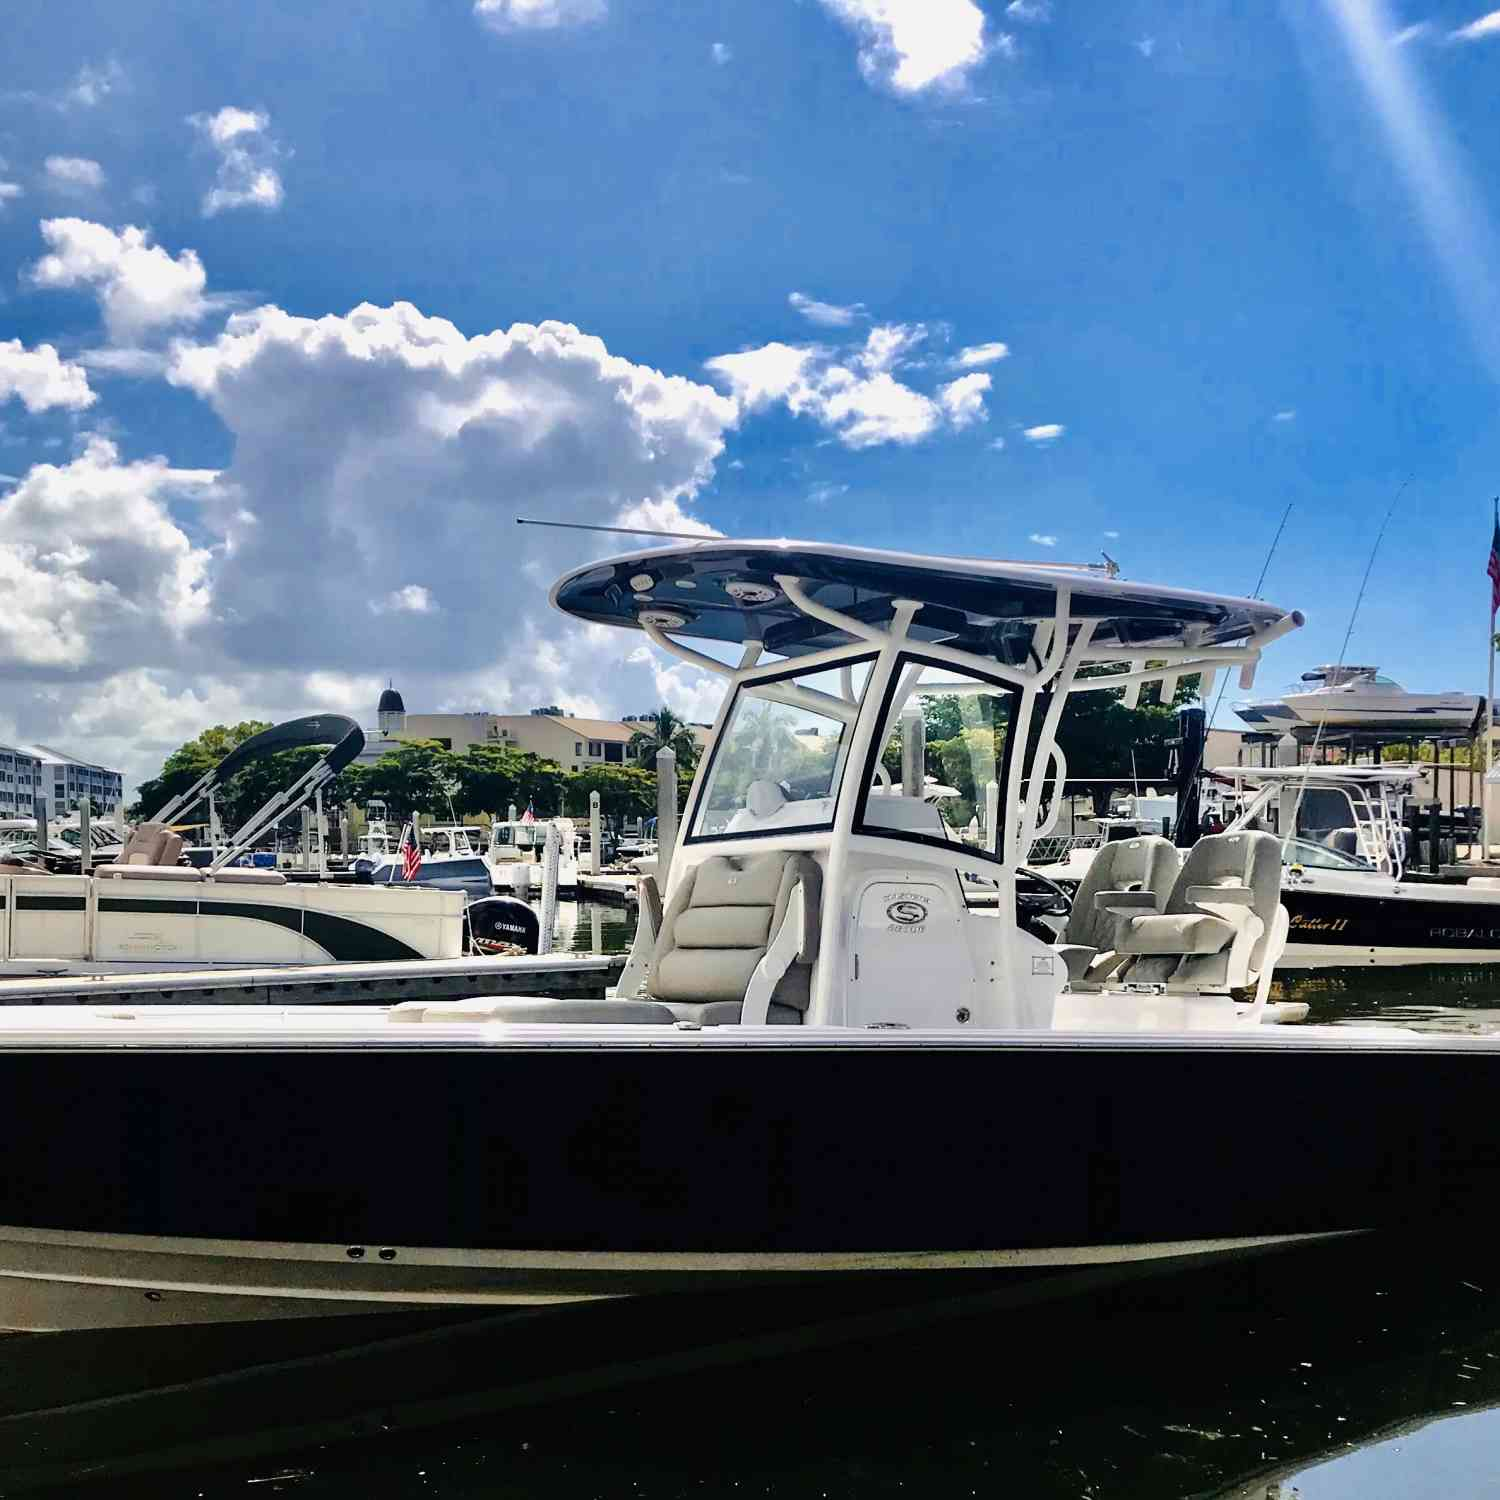 Title: Staycation - On board their Sportsman Masters 267OE Bay Boat - Location: FishTail Marina. Participating in the Photo Contest #SportsmanDecember2020